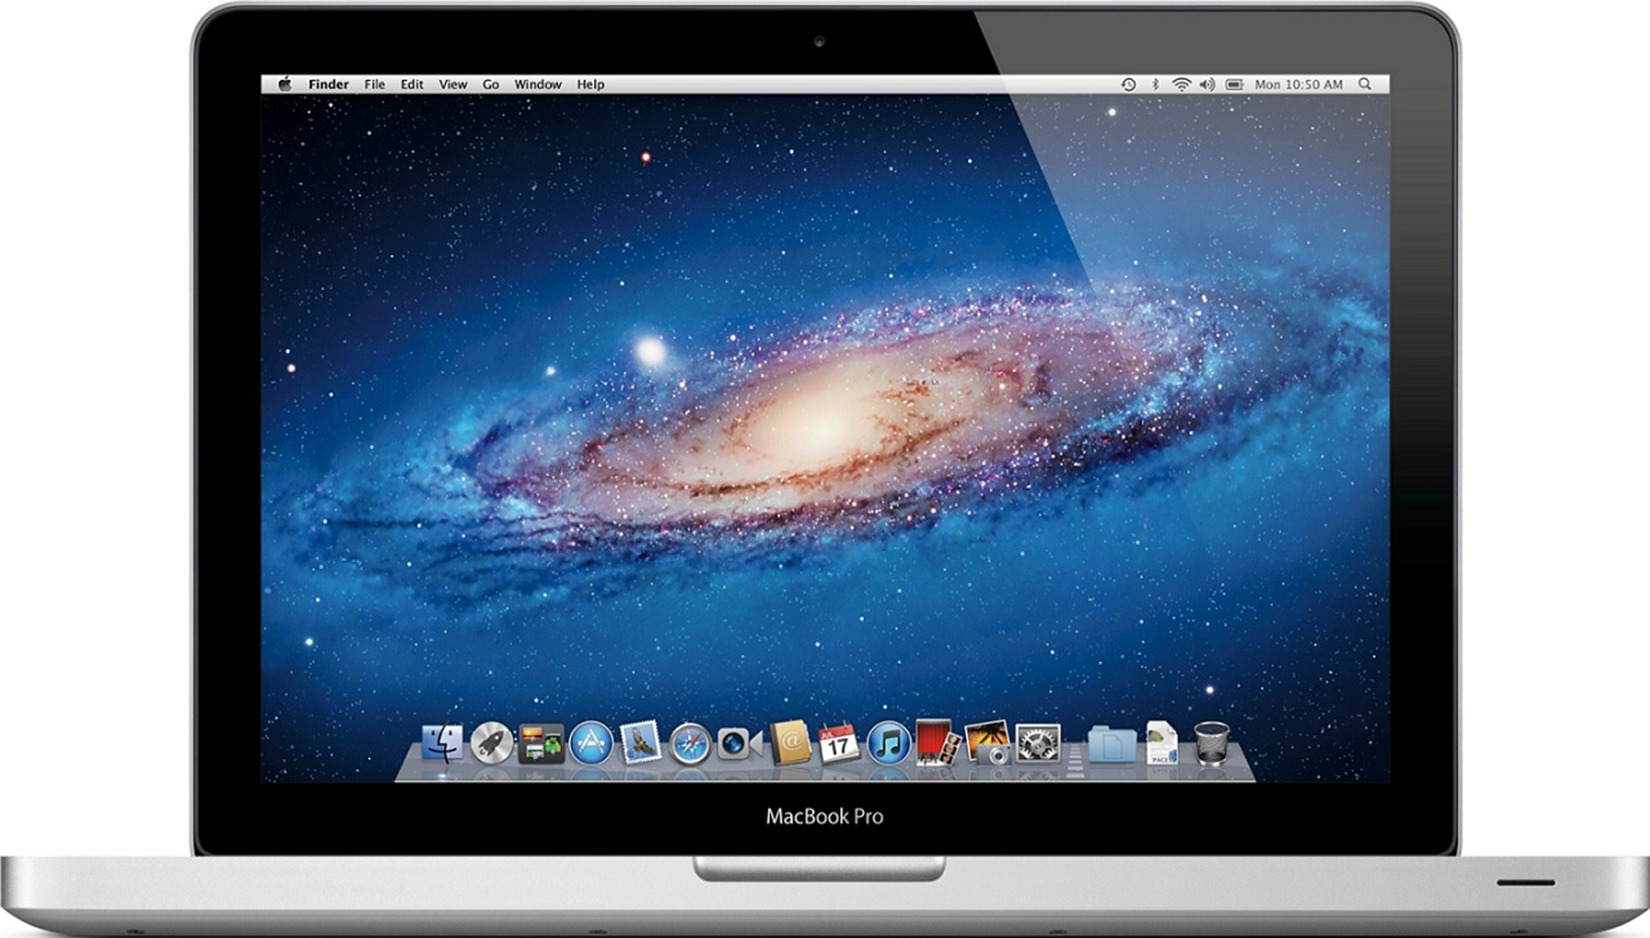 Apple MacBook Pro 15.4 (Glossy) 2.2 GHz Intel Core i7 4 GB RAM 500 GB HDD (5400 U/Min.) [Late 2011]